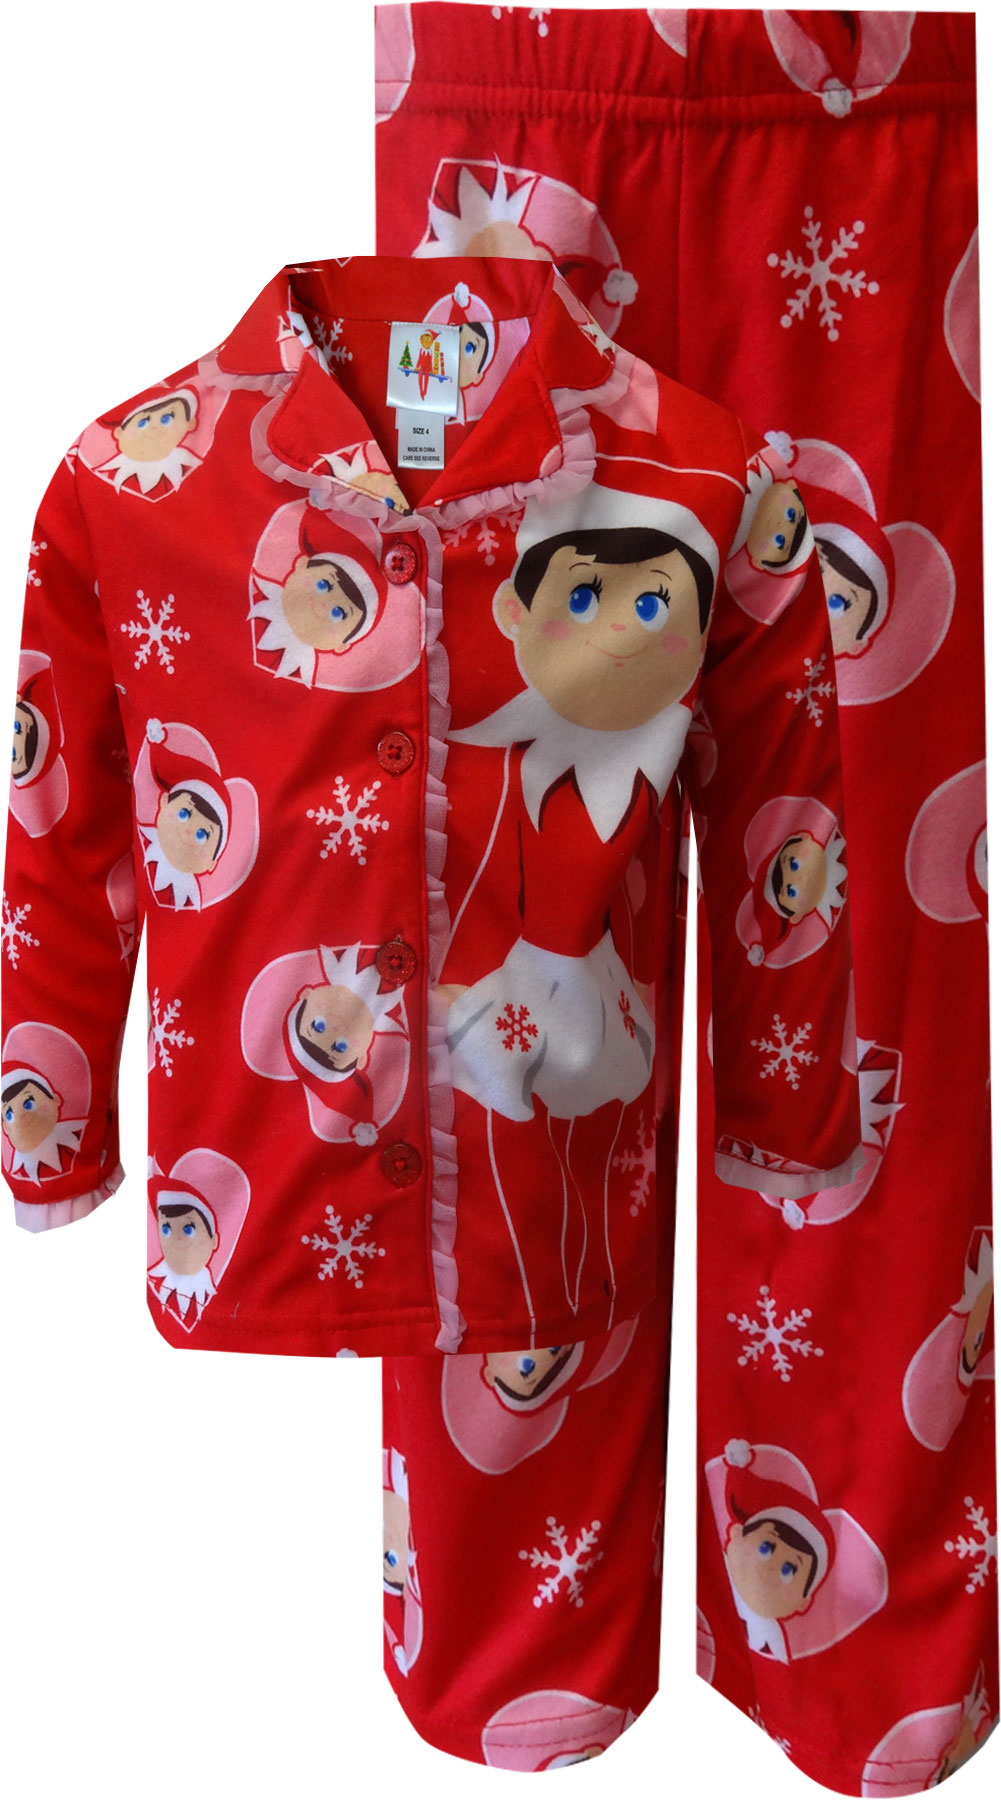 Image of I Love My Elf on the Shelf Snowflake Red Holiday Pajamas for girls